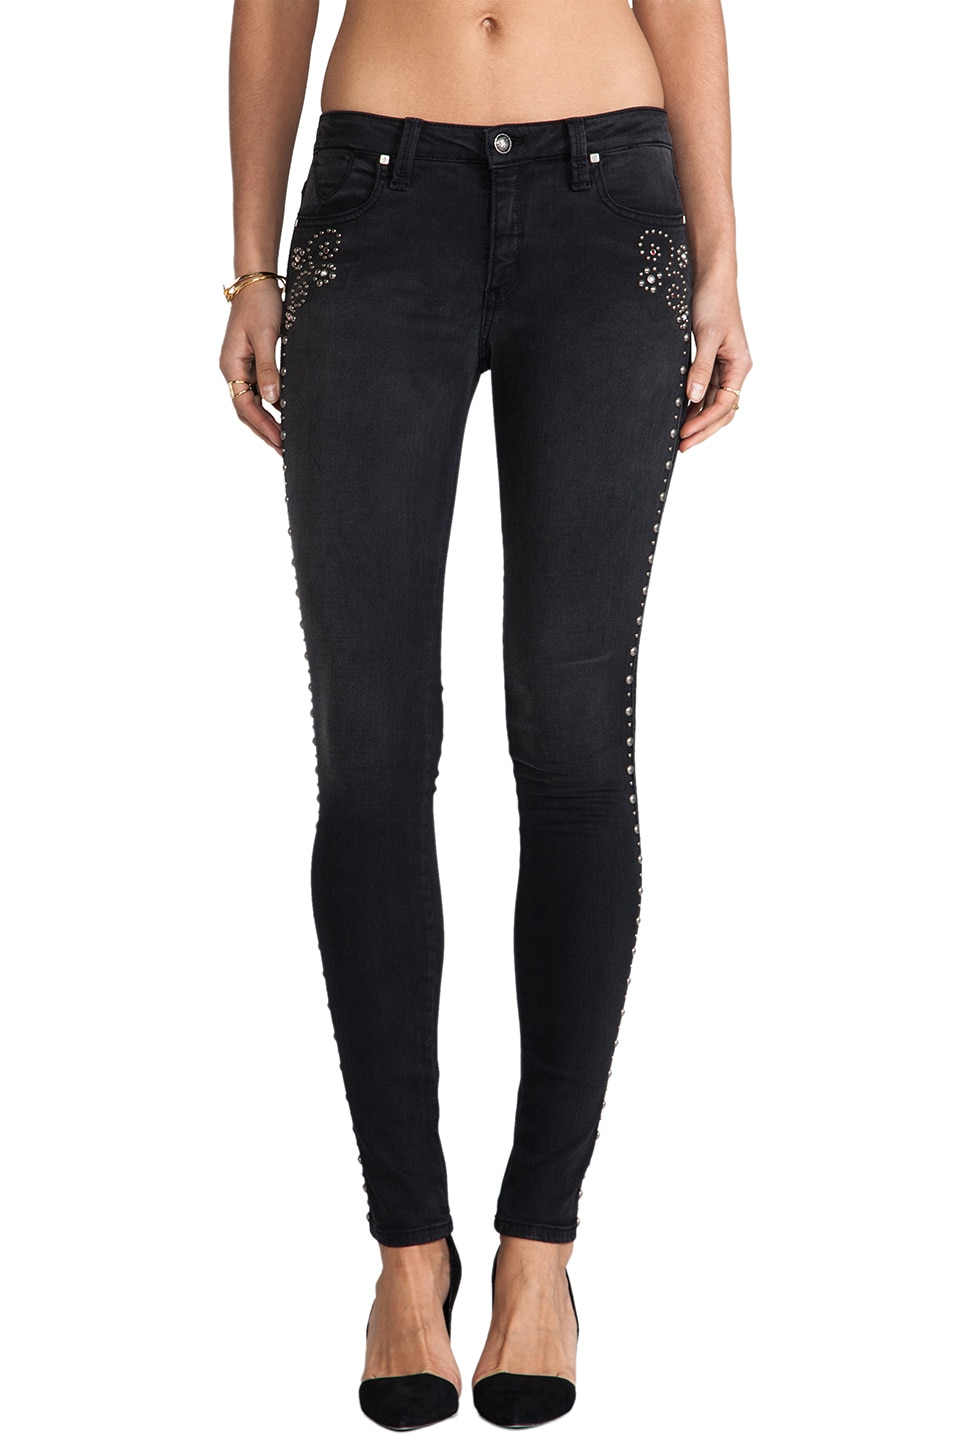 Frankie B. Jeans Nevada Stud Skinnies in Black